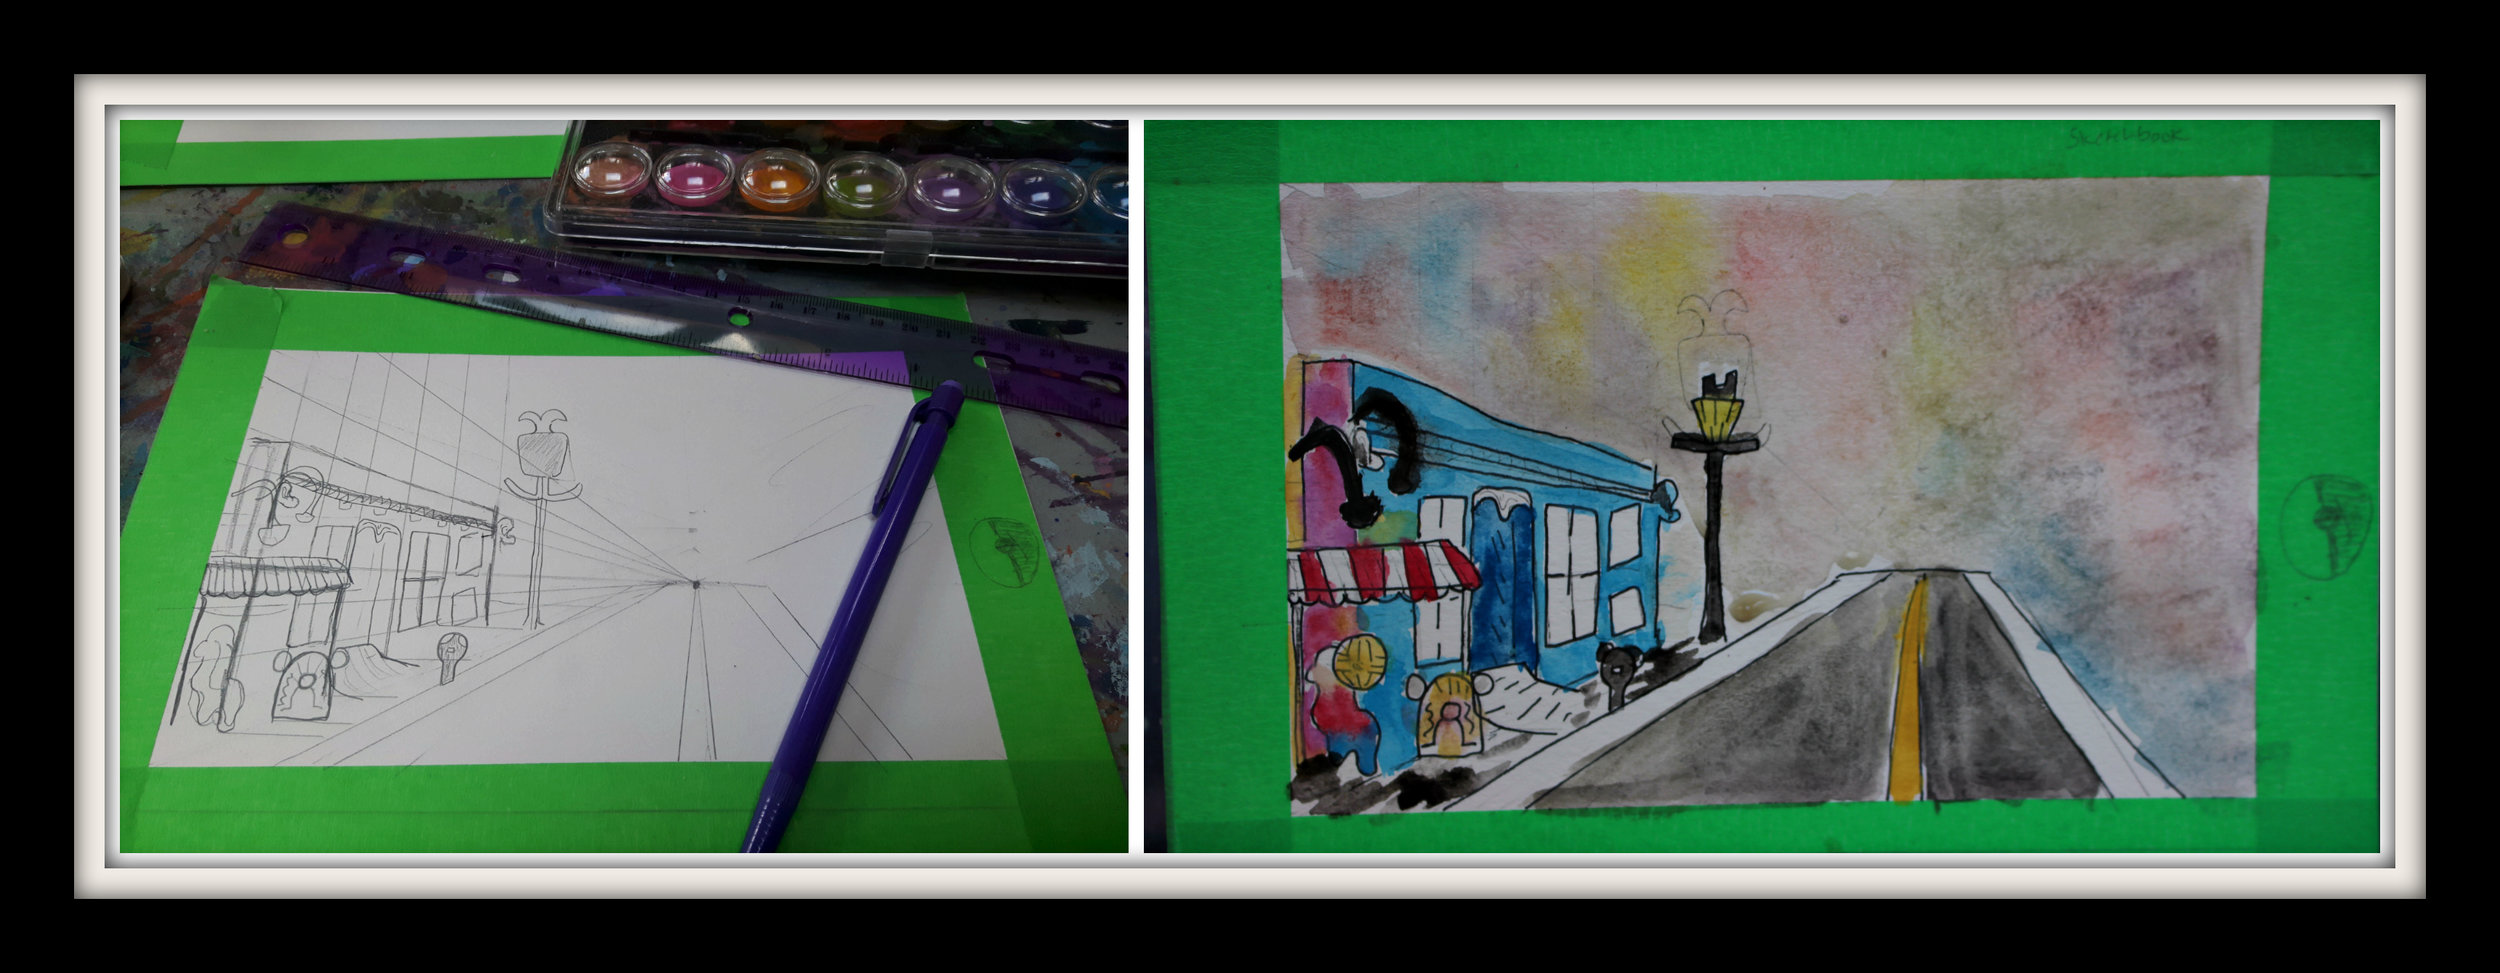 PL perspective background drawing.jpg